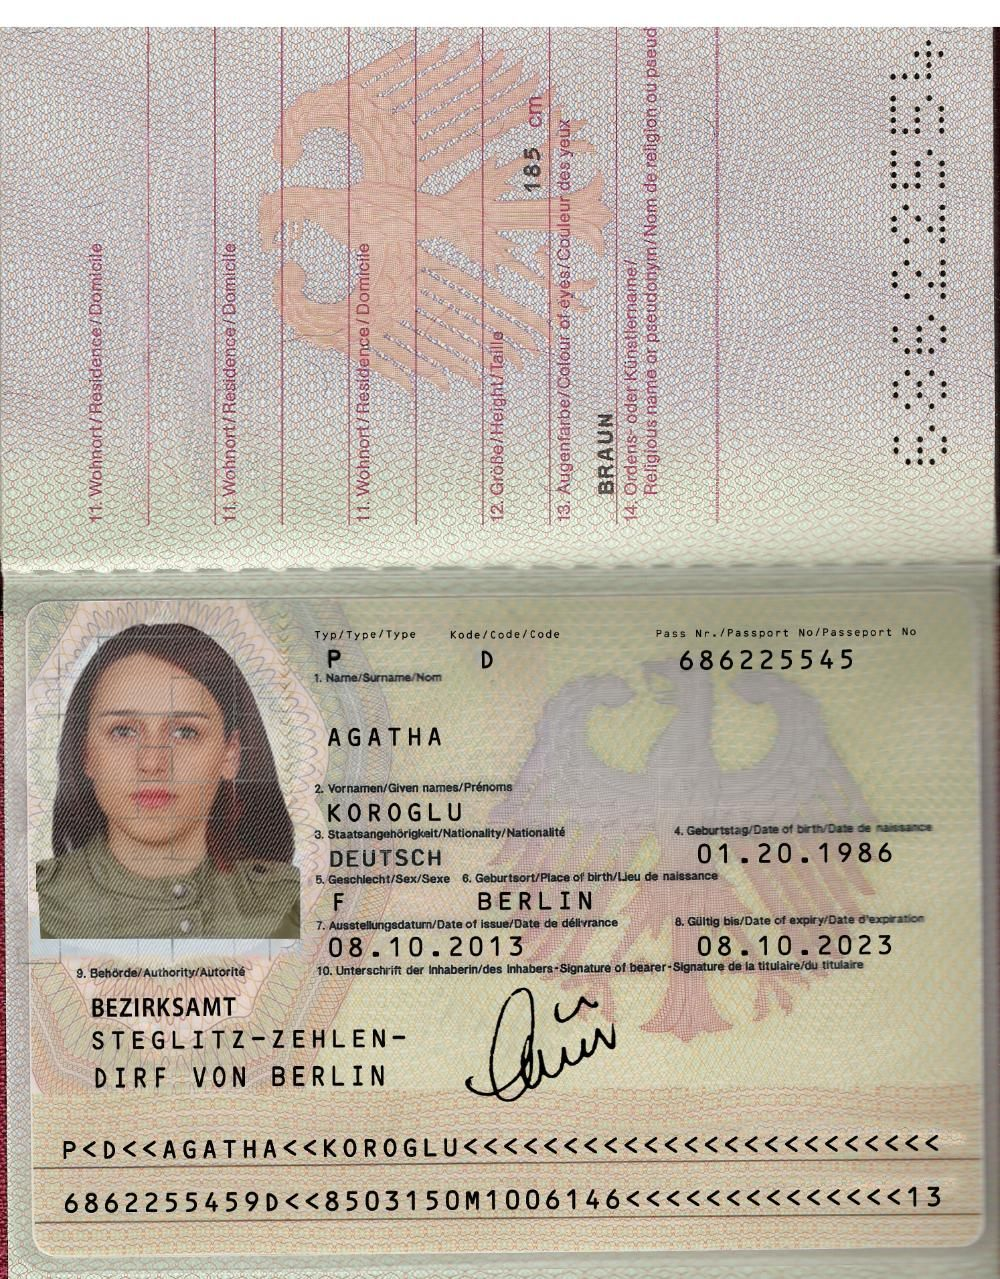 pin by jackscodocuments on belgium passports driving license